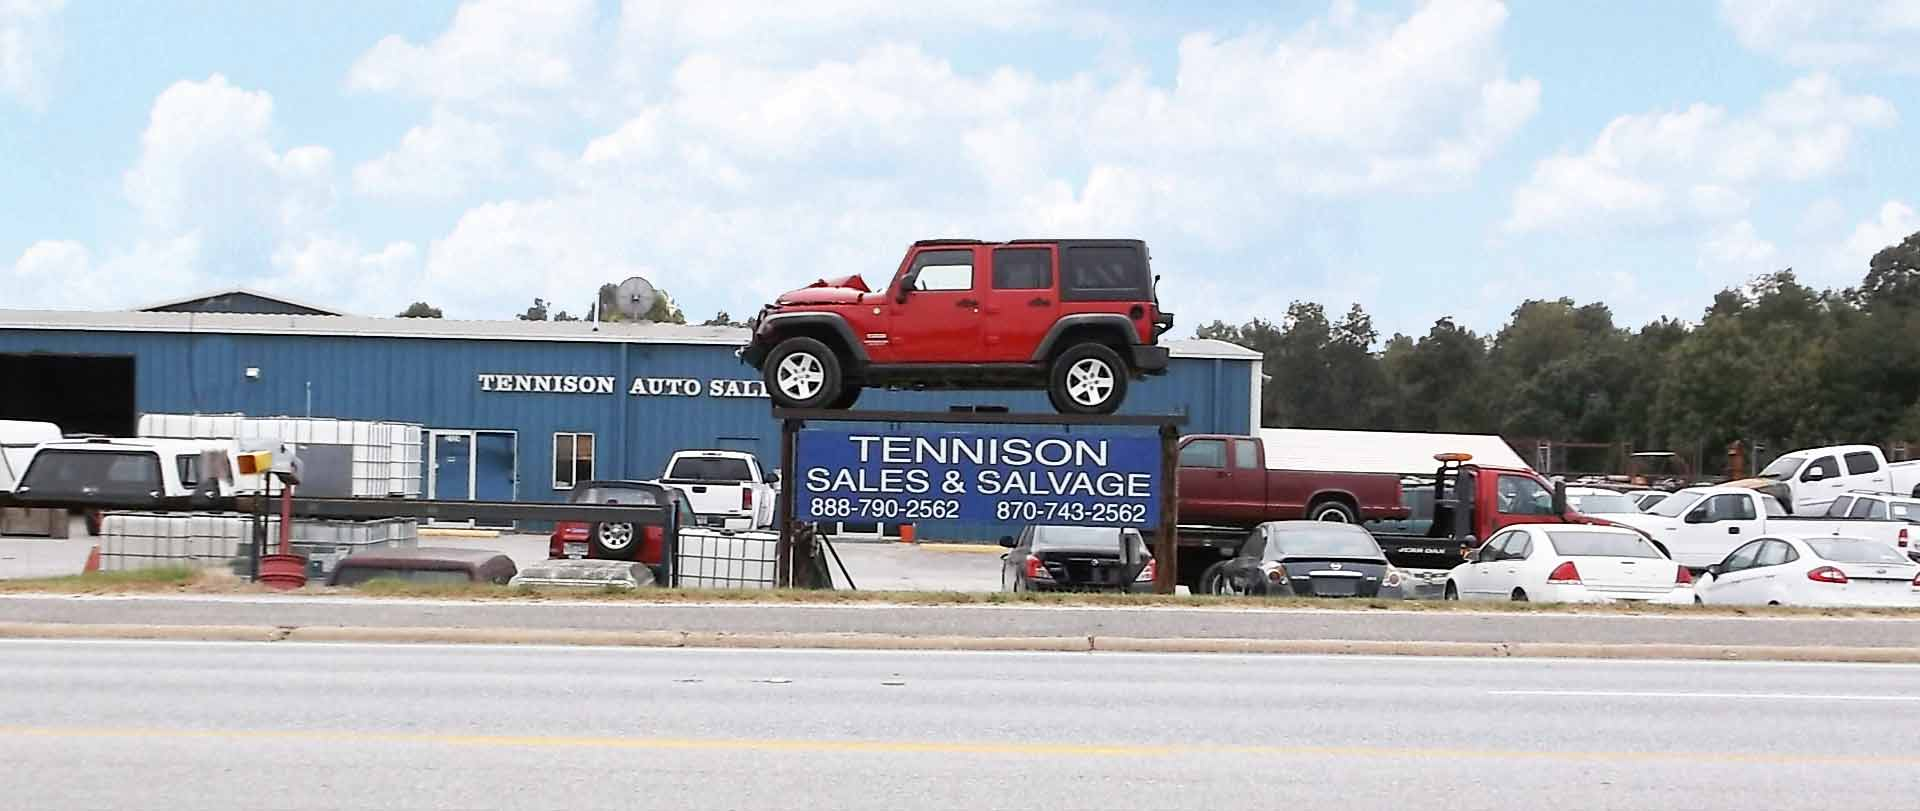 Auto Salvage Harrison Arkansas Tennison Auto Sales